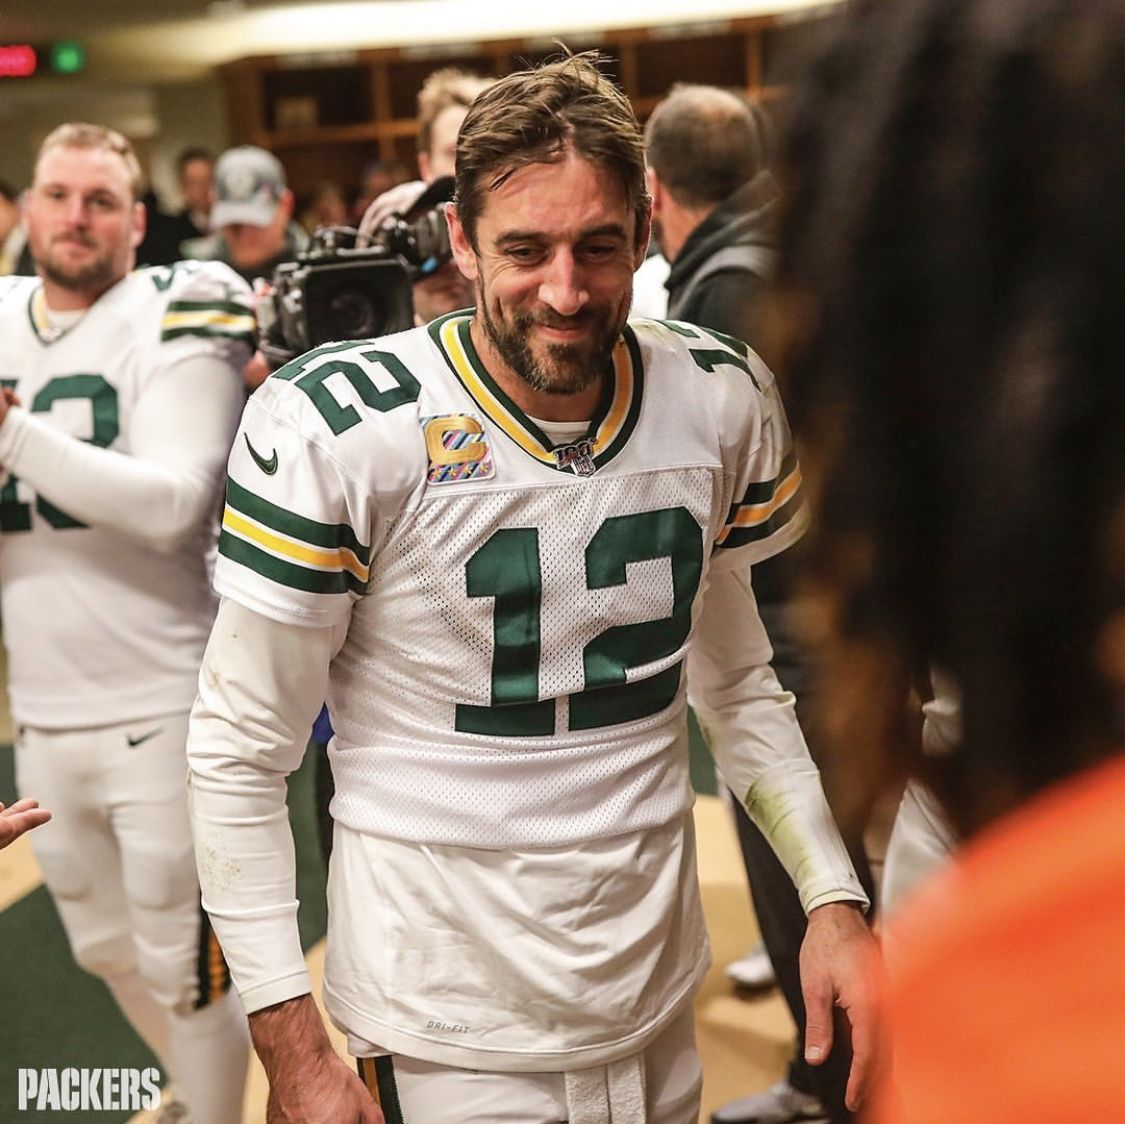 Pin By Sarah Pfarr On Man Crush Rodgers Packers Aaron Rodgers Man Crush